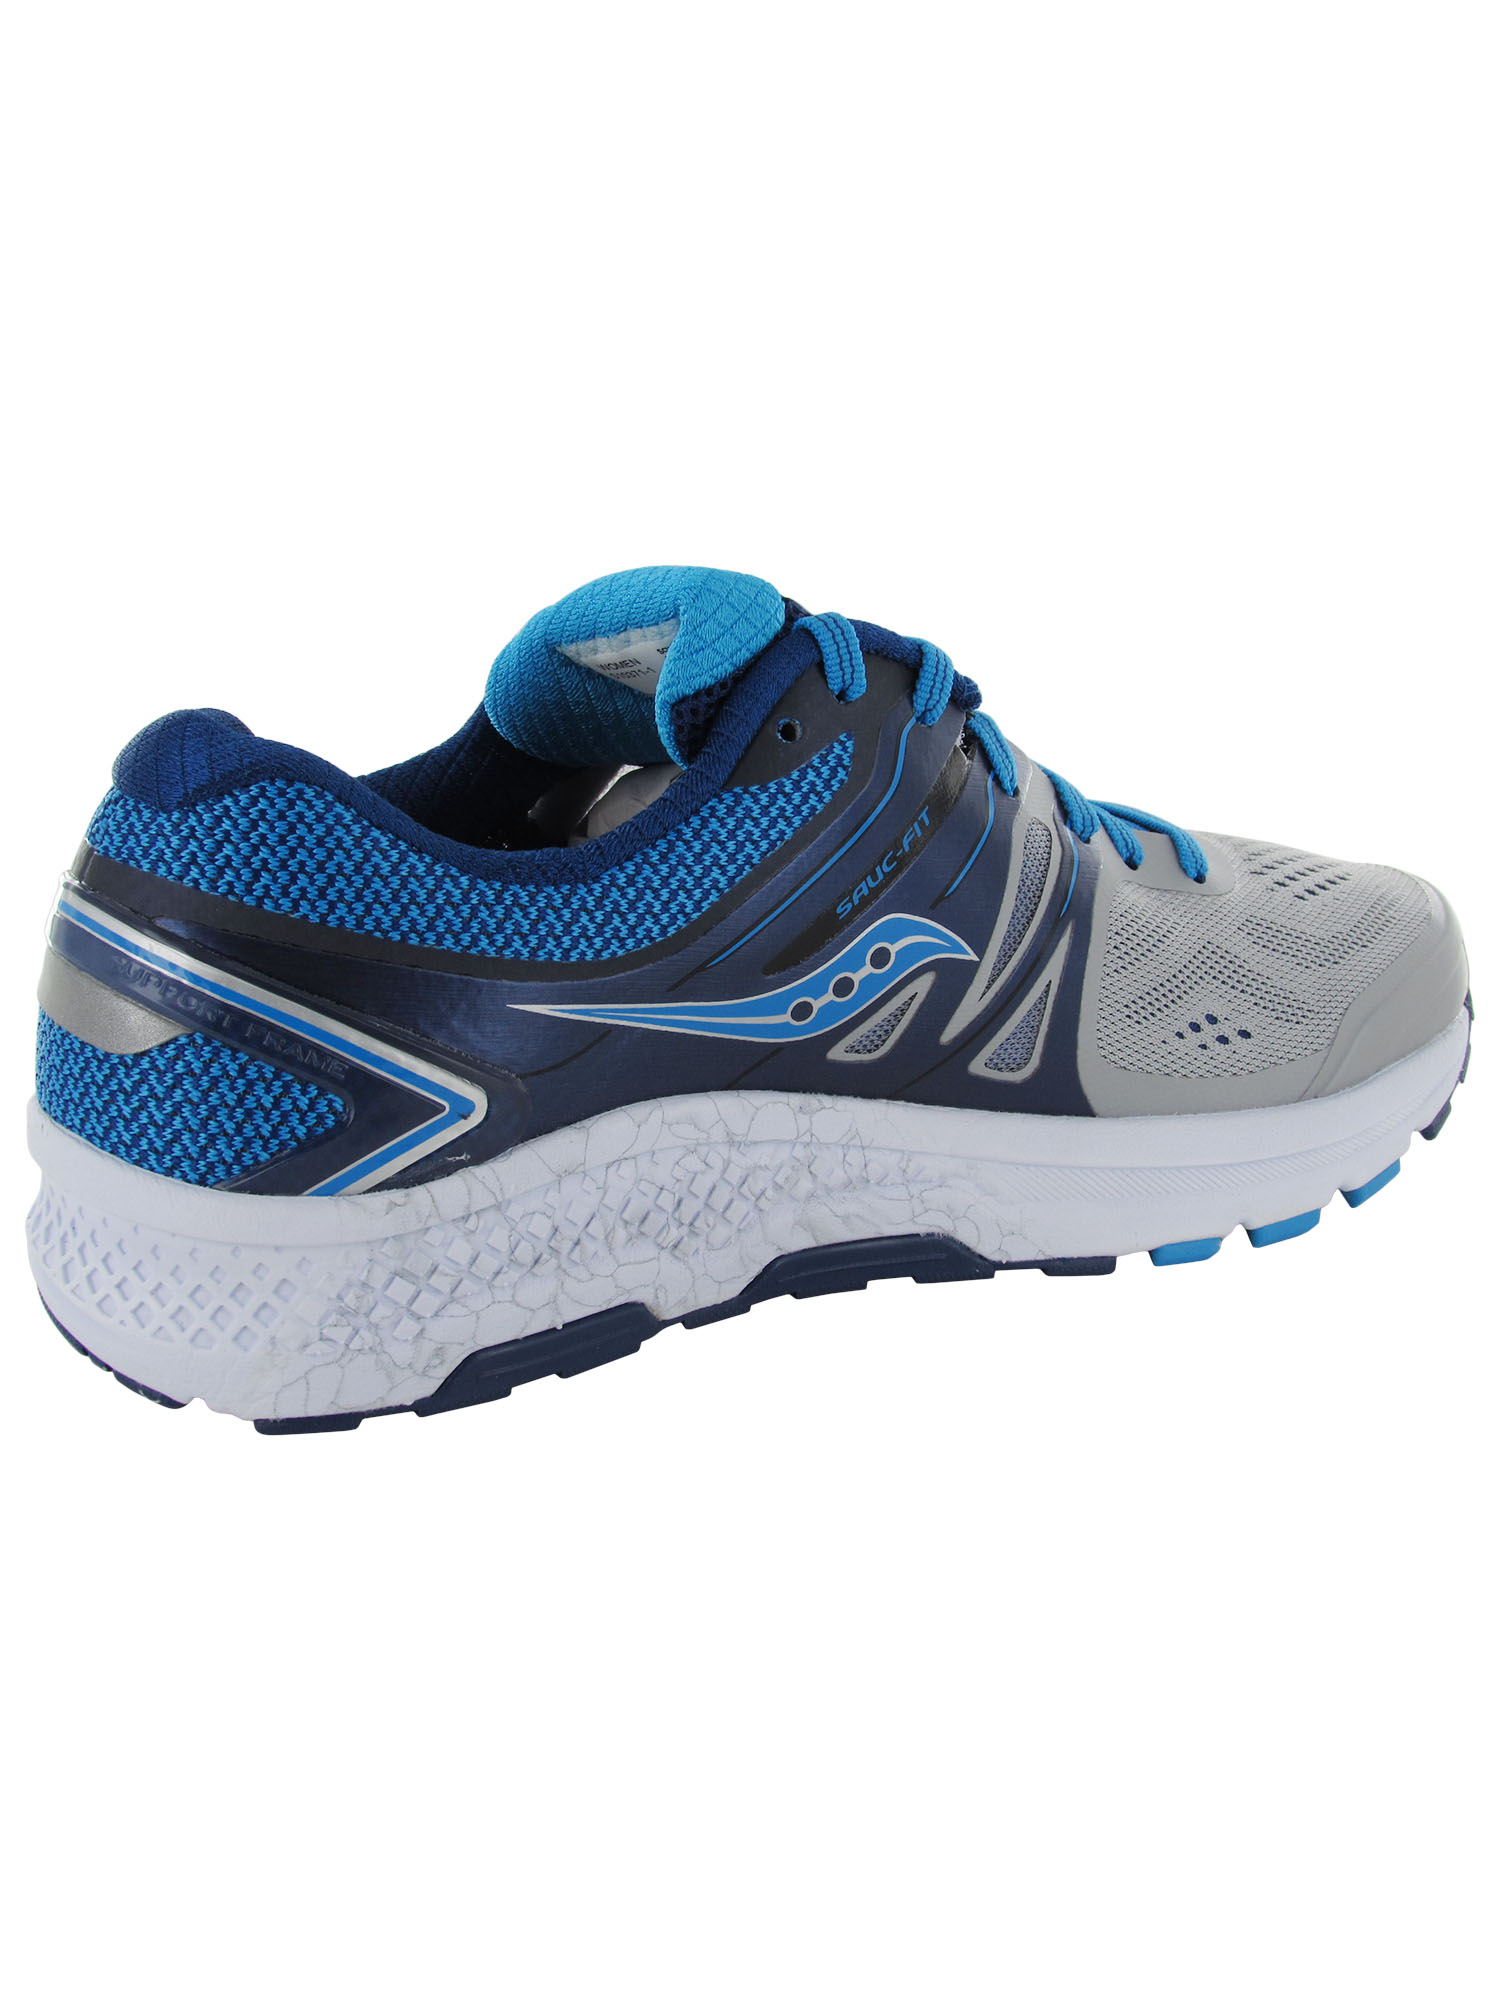 Saucony Women/'s Omni 16 Running Sneakers Pick A Size Grey//Blue Pre-owned